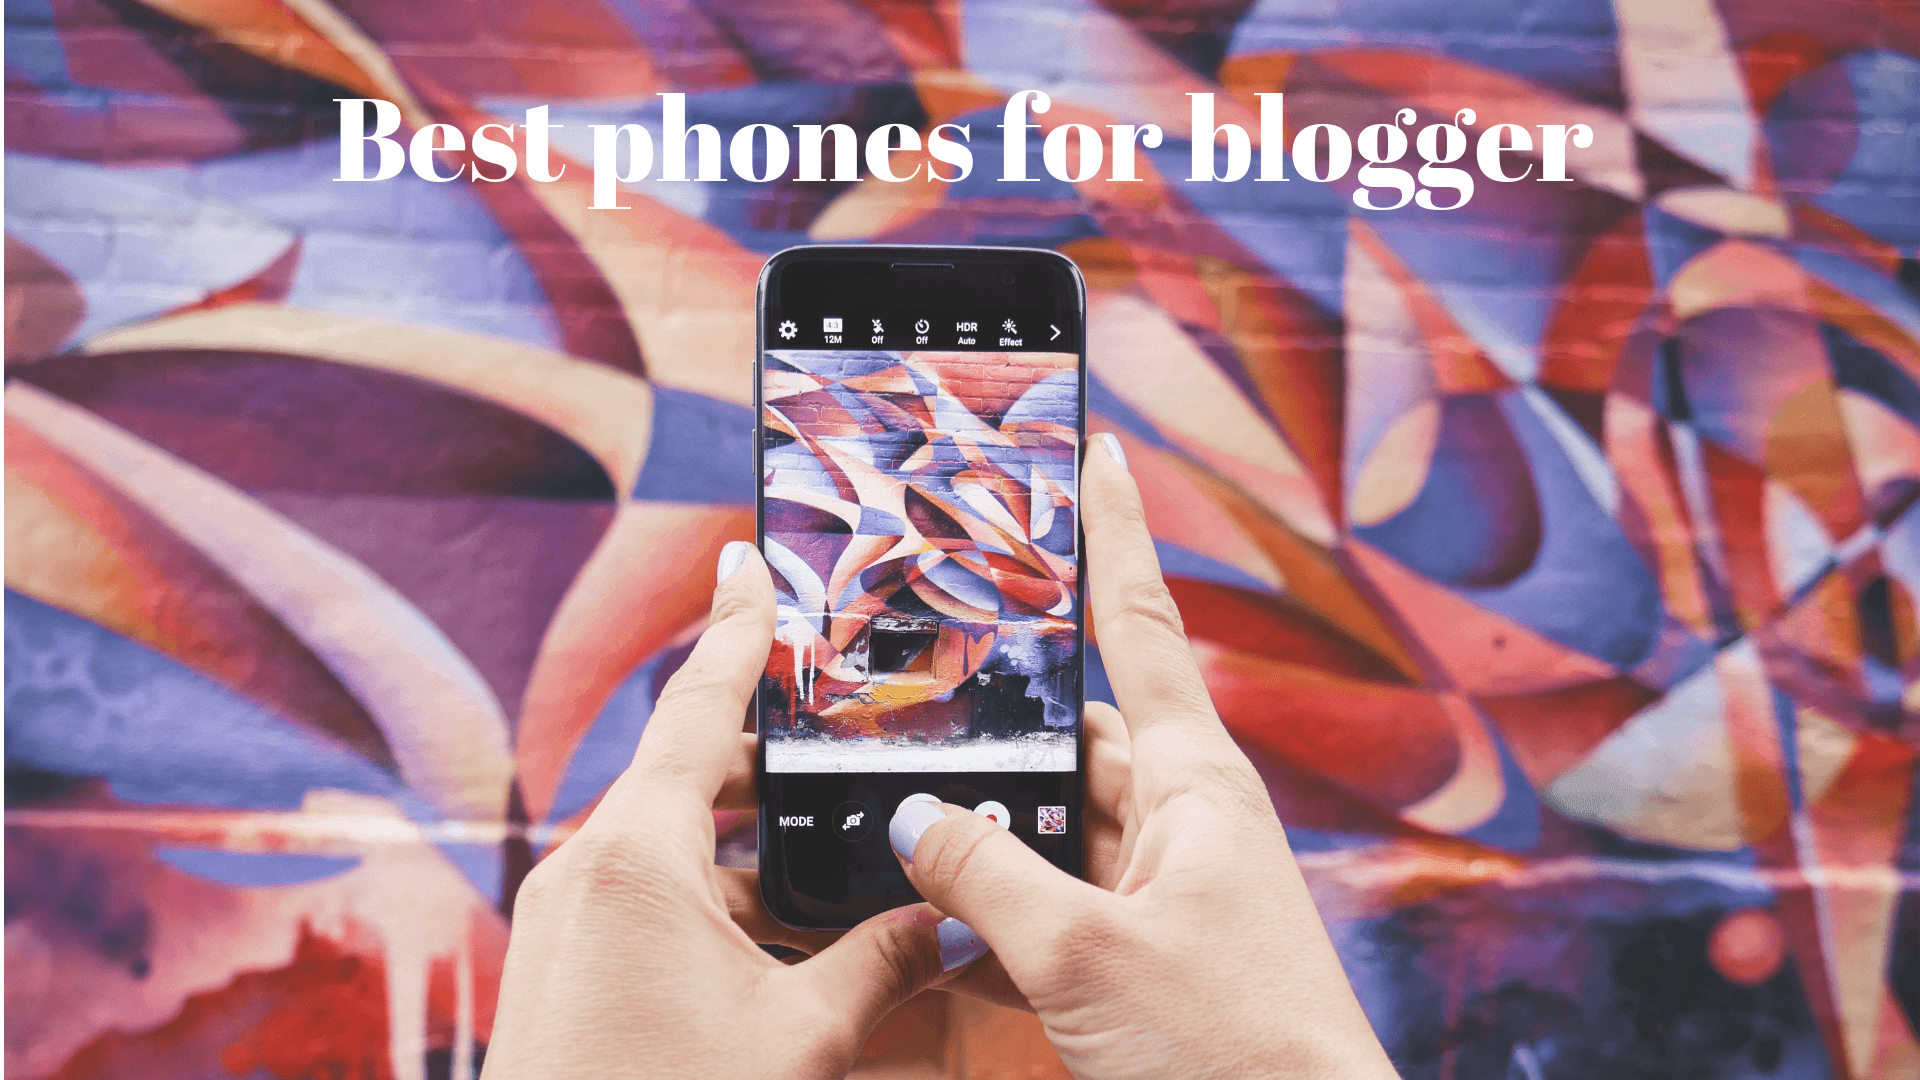 Best phones for blogger